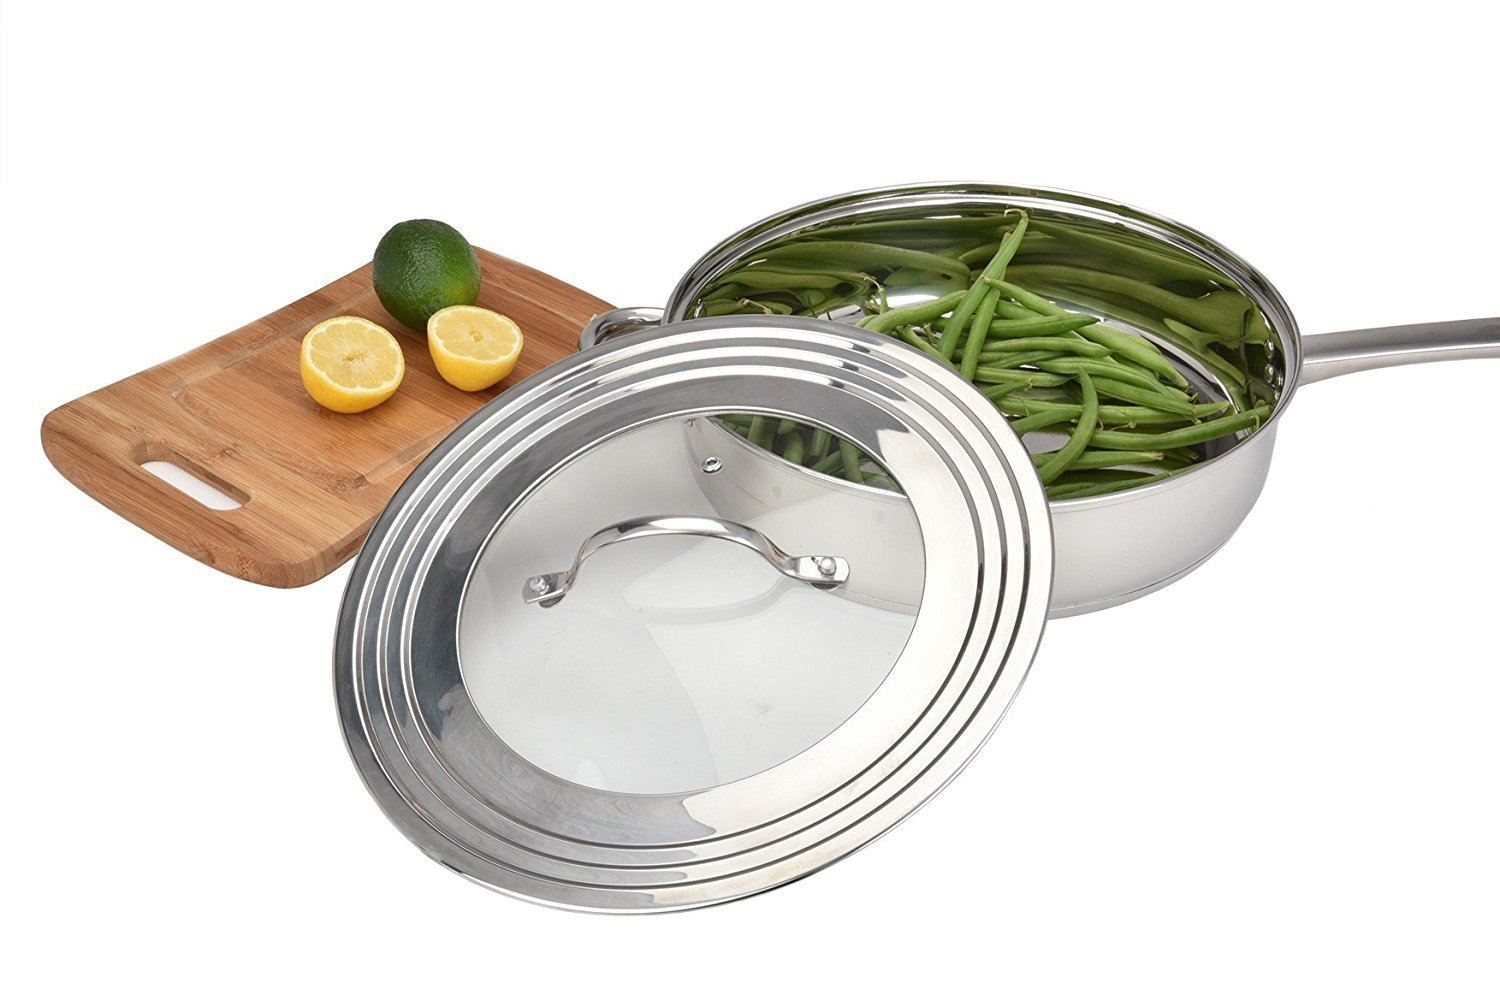 Universal Lid Stainless Steel 18/8 and Tempered Glass, Fits All 7'' to 12'' Pots and Pans, Replacement Frying Pan Cover and Cookware Lids by Modern Innovations (Image #5)